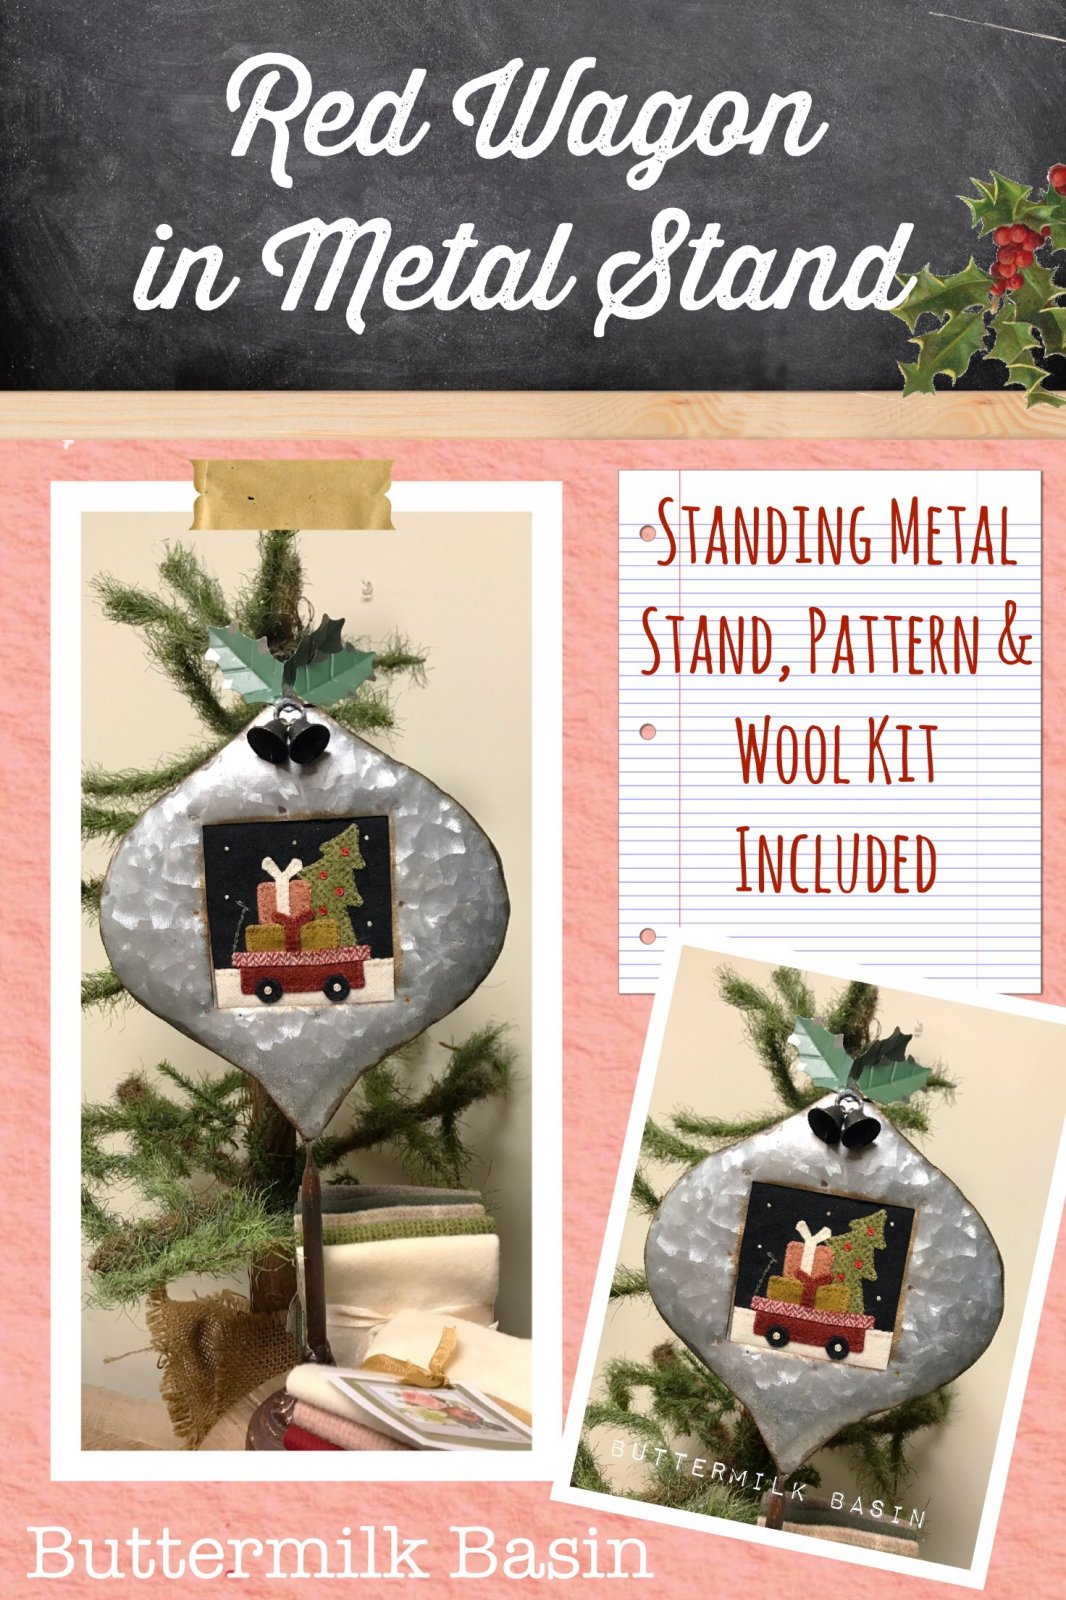 Red Wagon in Metal Stand * KIT, Pattern & Stand